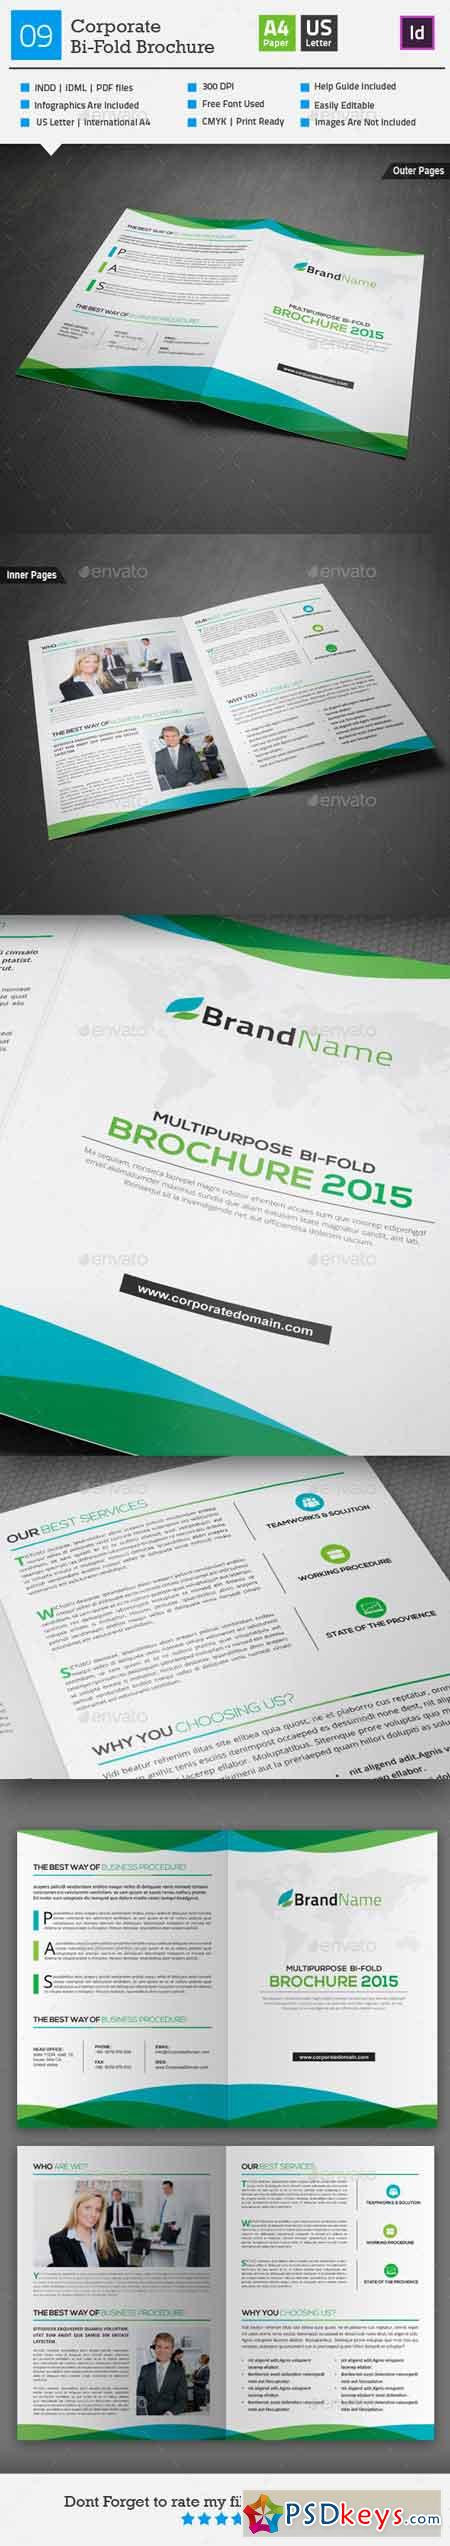 Multipurpose Bi-fold Brochure 09 10273293